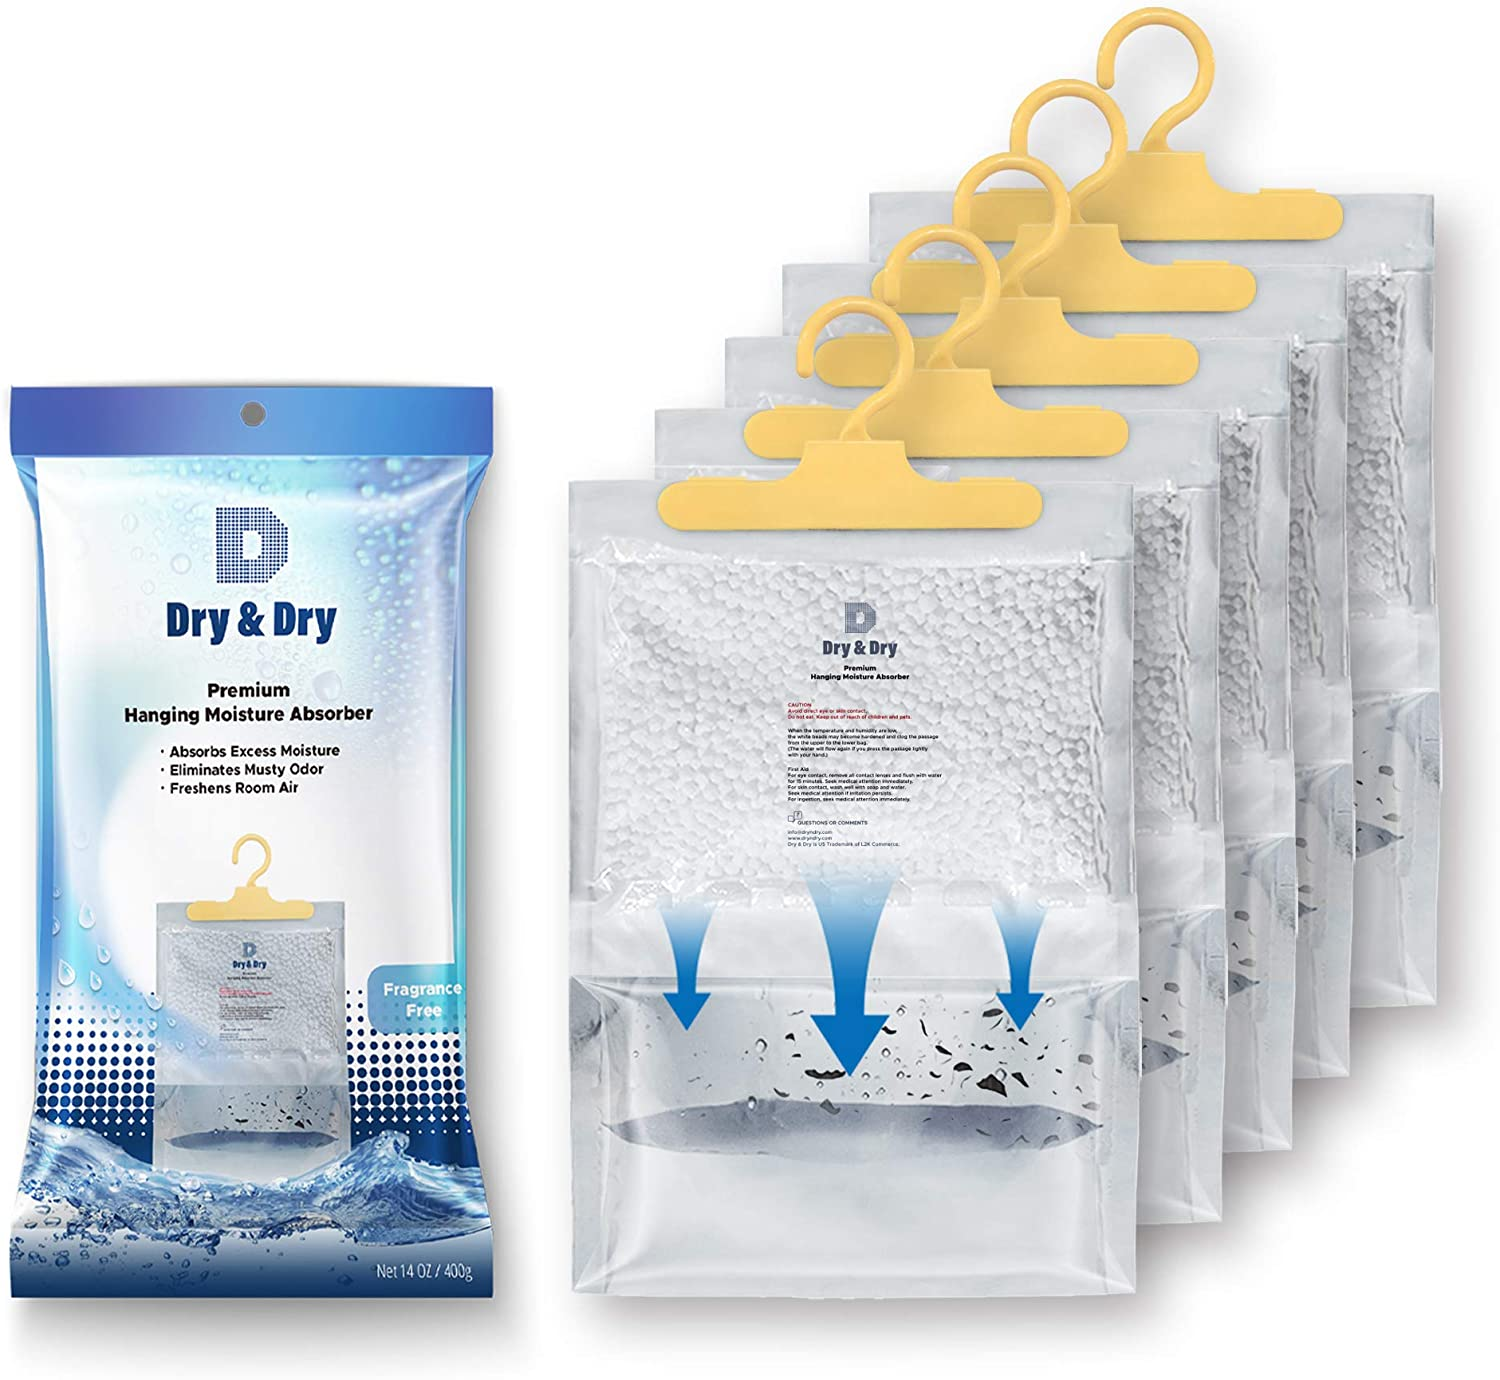 Dry & Dry 5 Packs [Net 14 Oz/Pack] Premium Hanging Moisture Absorber to Control Excess Moisture for Basements, Closets, Bathrooms, Laundry Rooms. - Ultra Strong Moisture Absorber